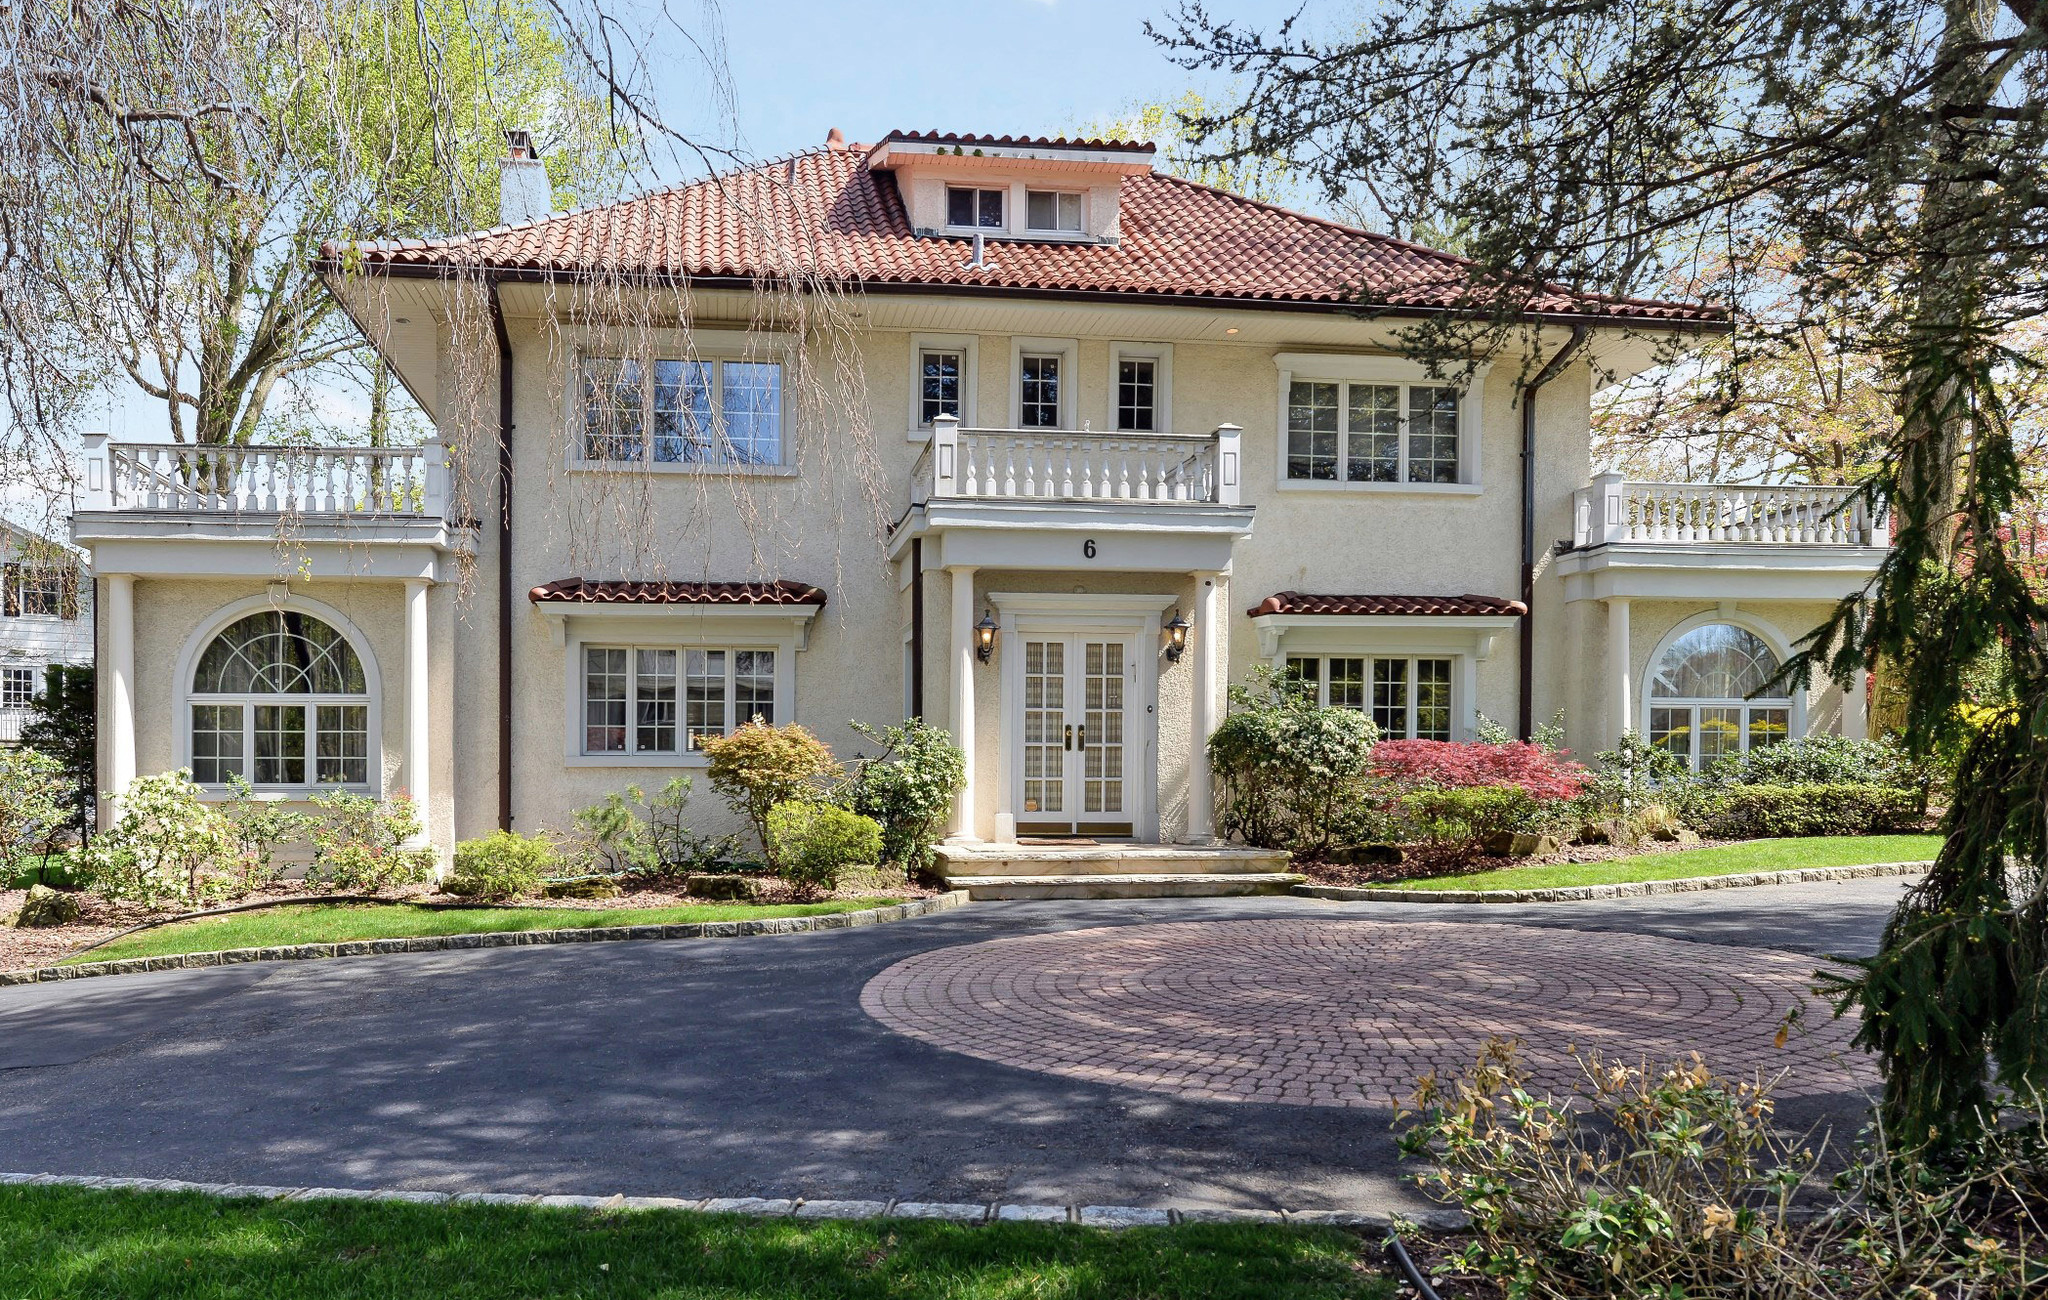 f scott fitzgerald s gatsby house for for 3 9 million f scott fitzgerald s gatsby house for for 3 9 million la times